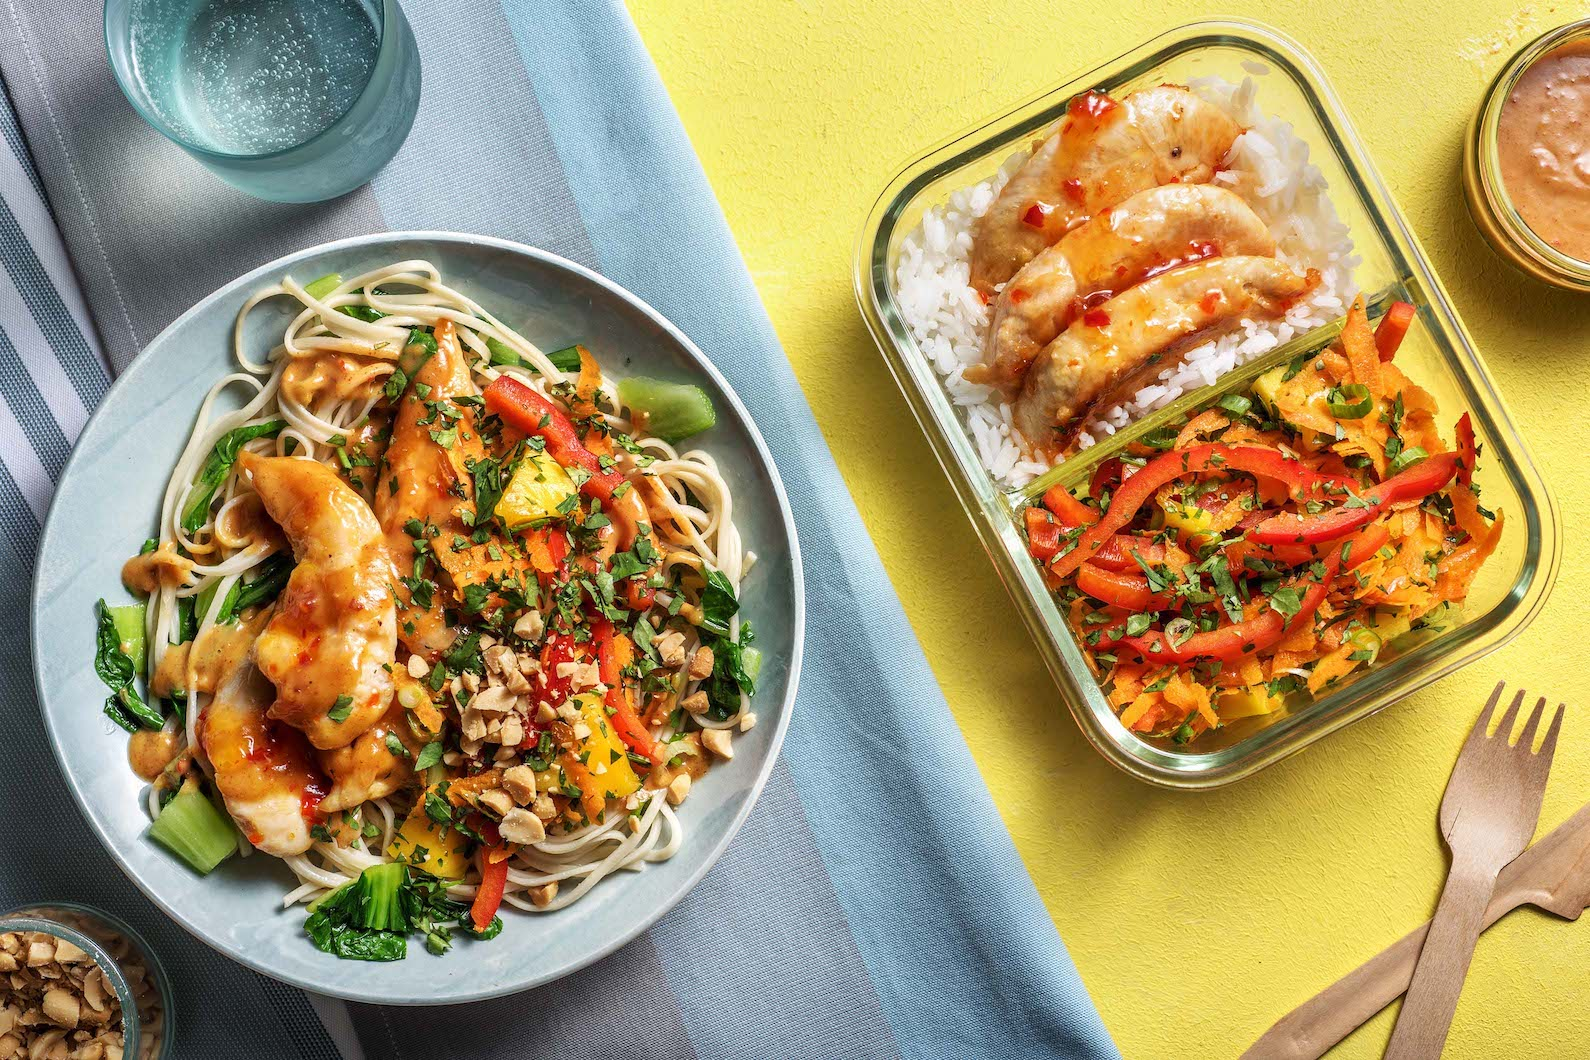 Thai Chicken Peanut Noodles for Dinner Thai Chicken with Rice and Mango Salad for lunch,